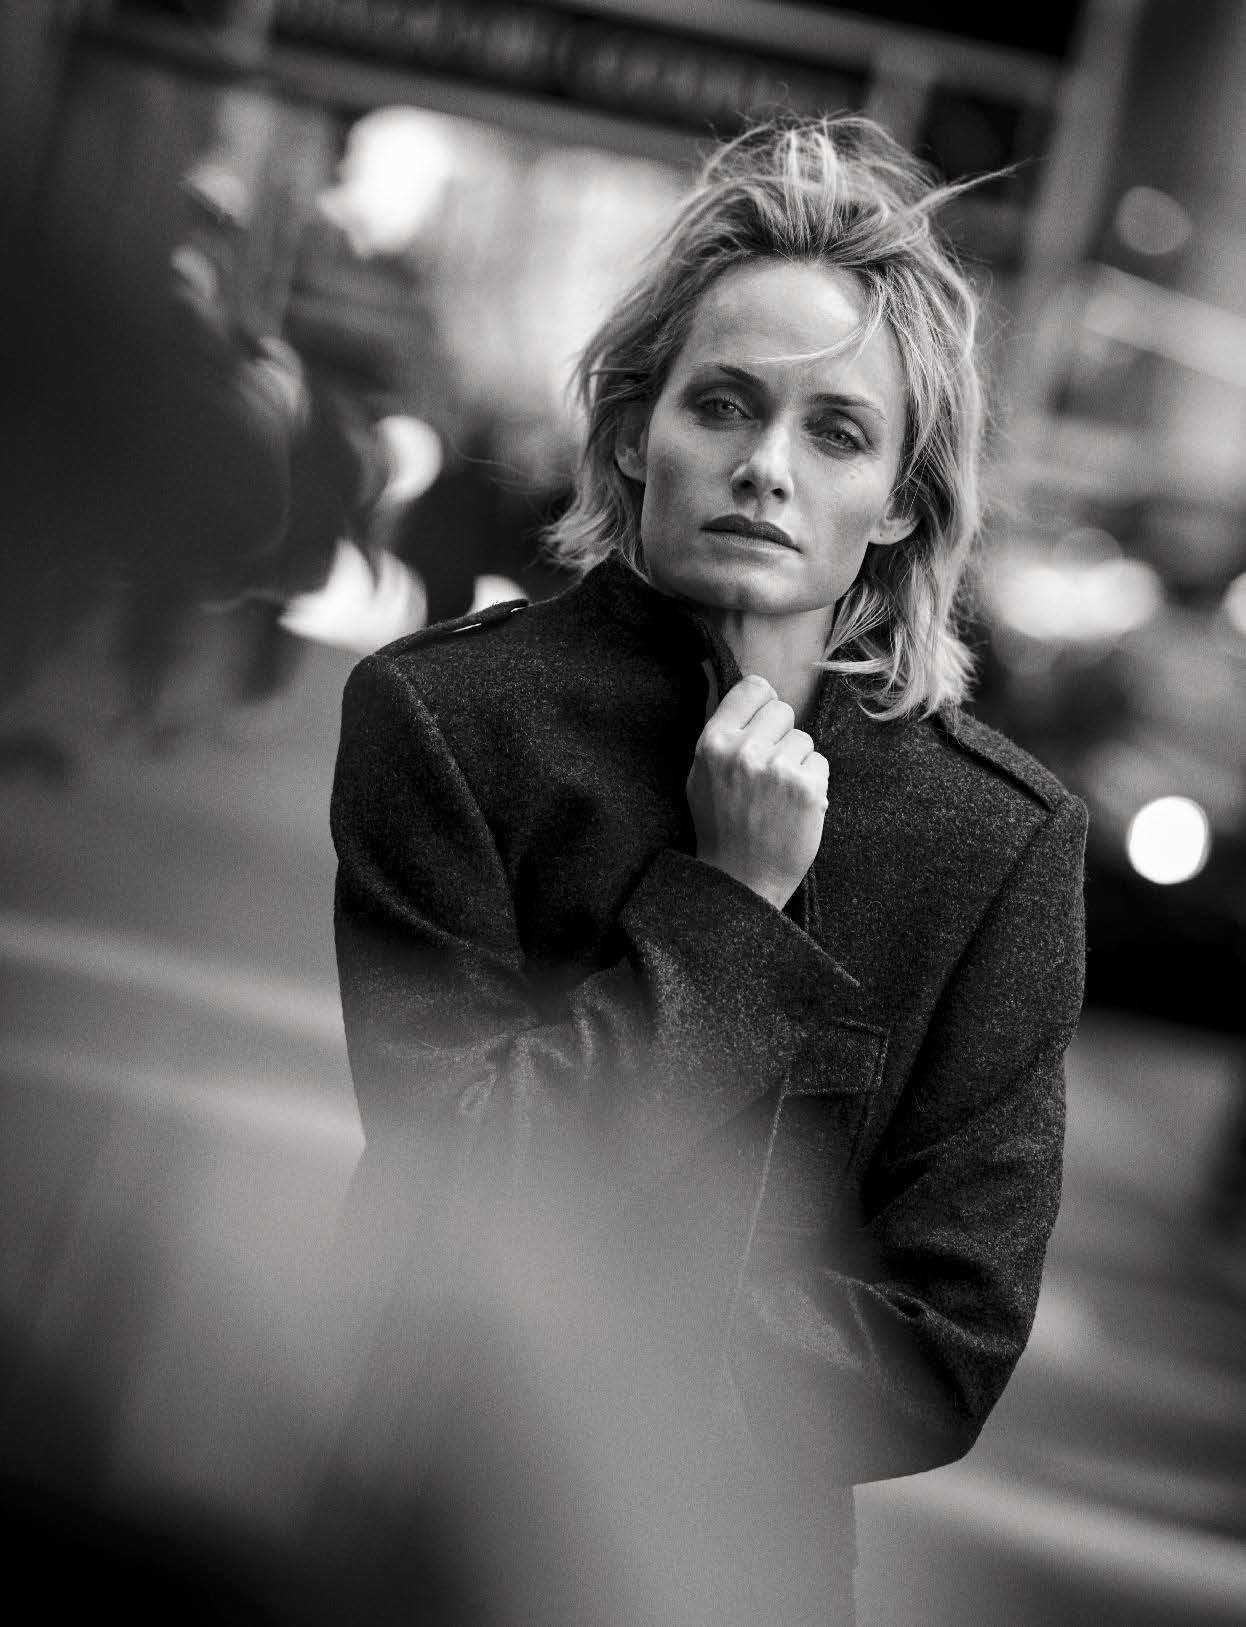 19-Vogue-Italia-October-2016-Amber-Valletta-by-Peter-Lindbergh